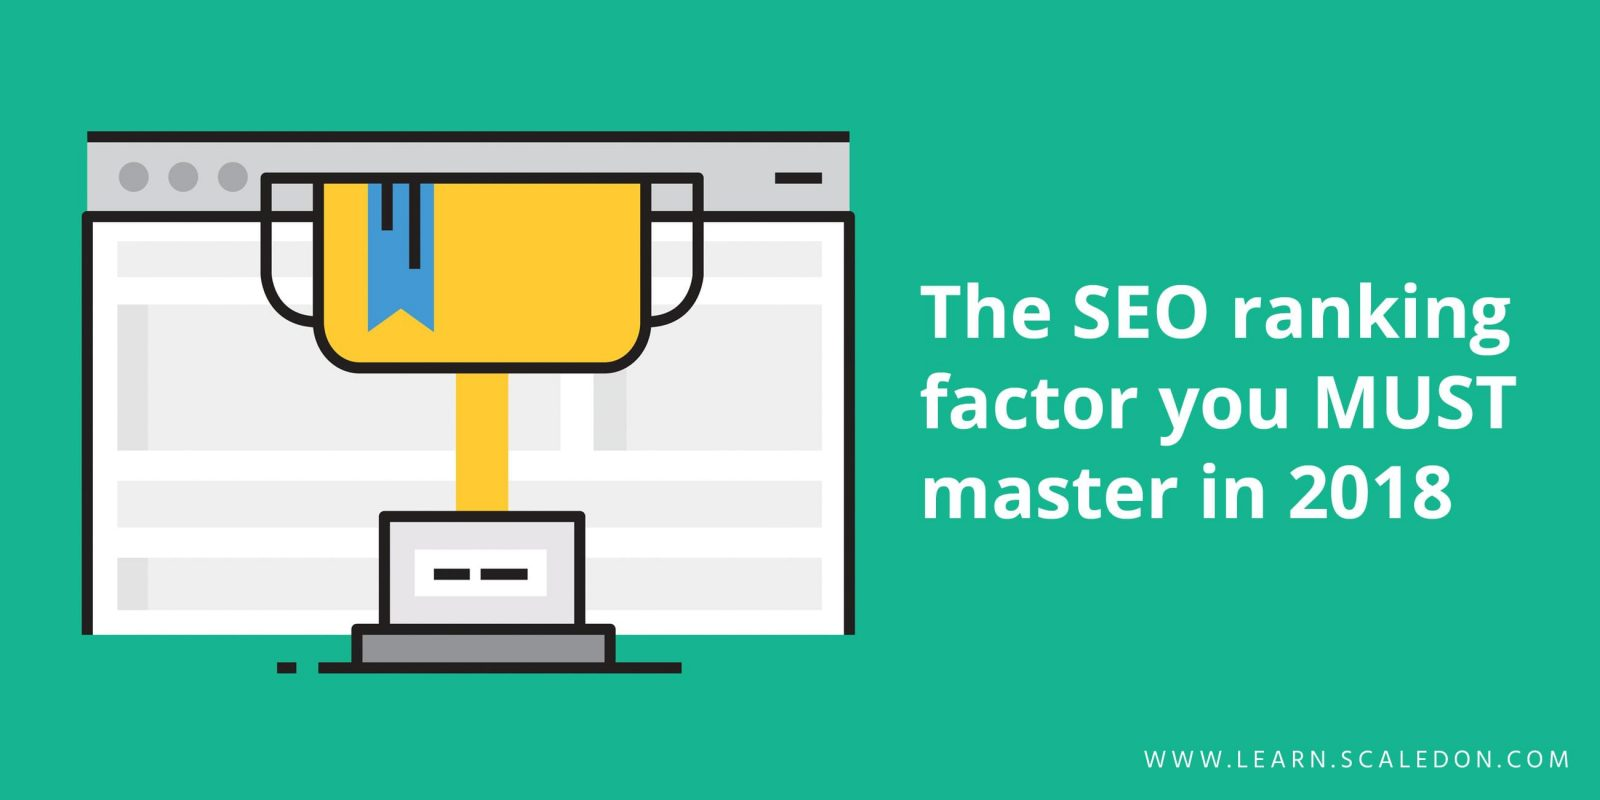 The SEO ranking factor you MUST master in 2018